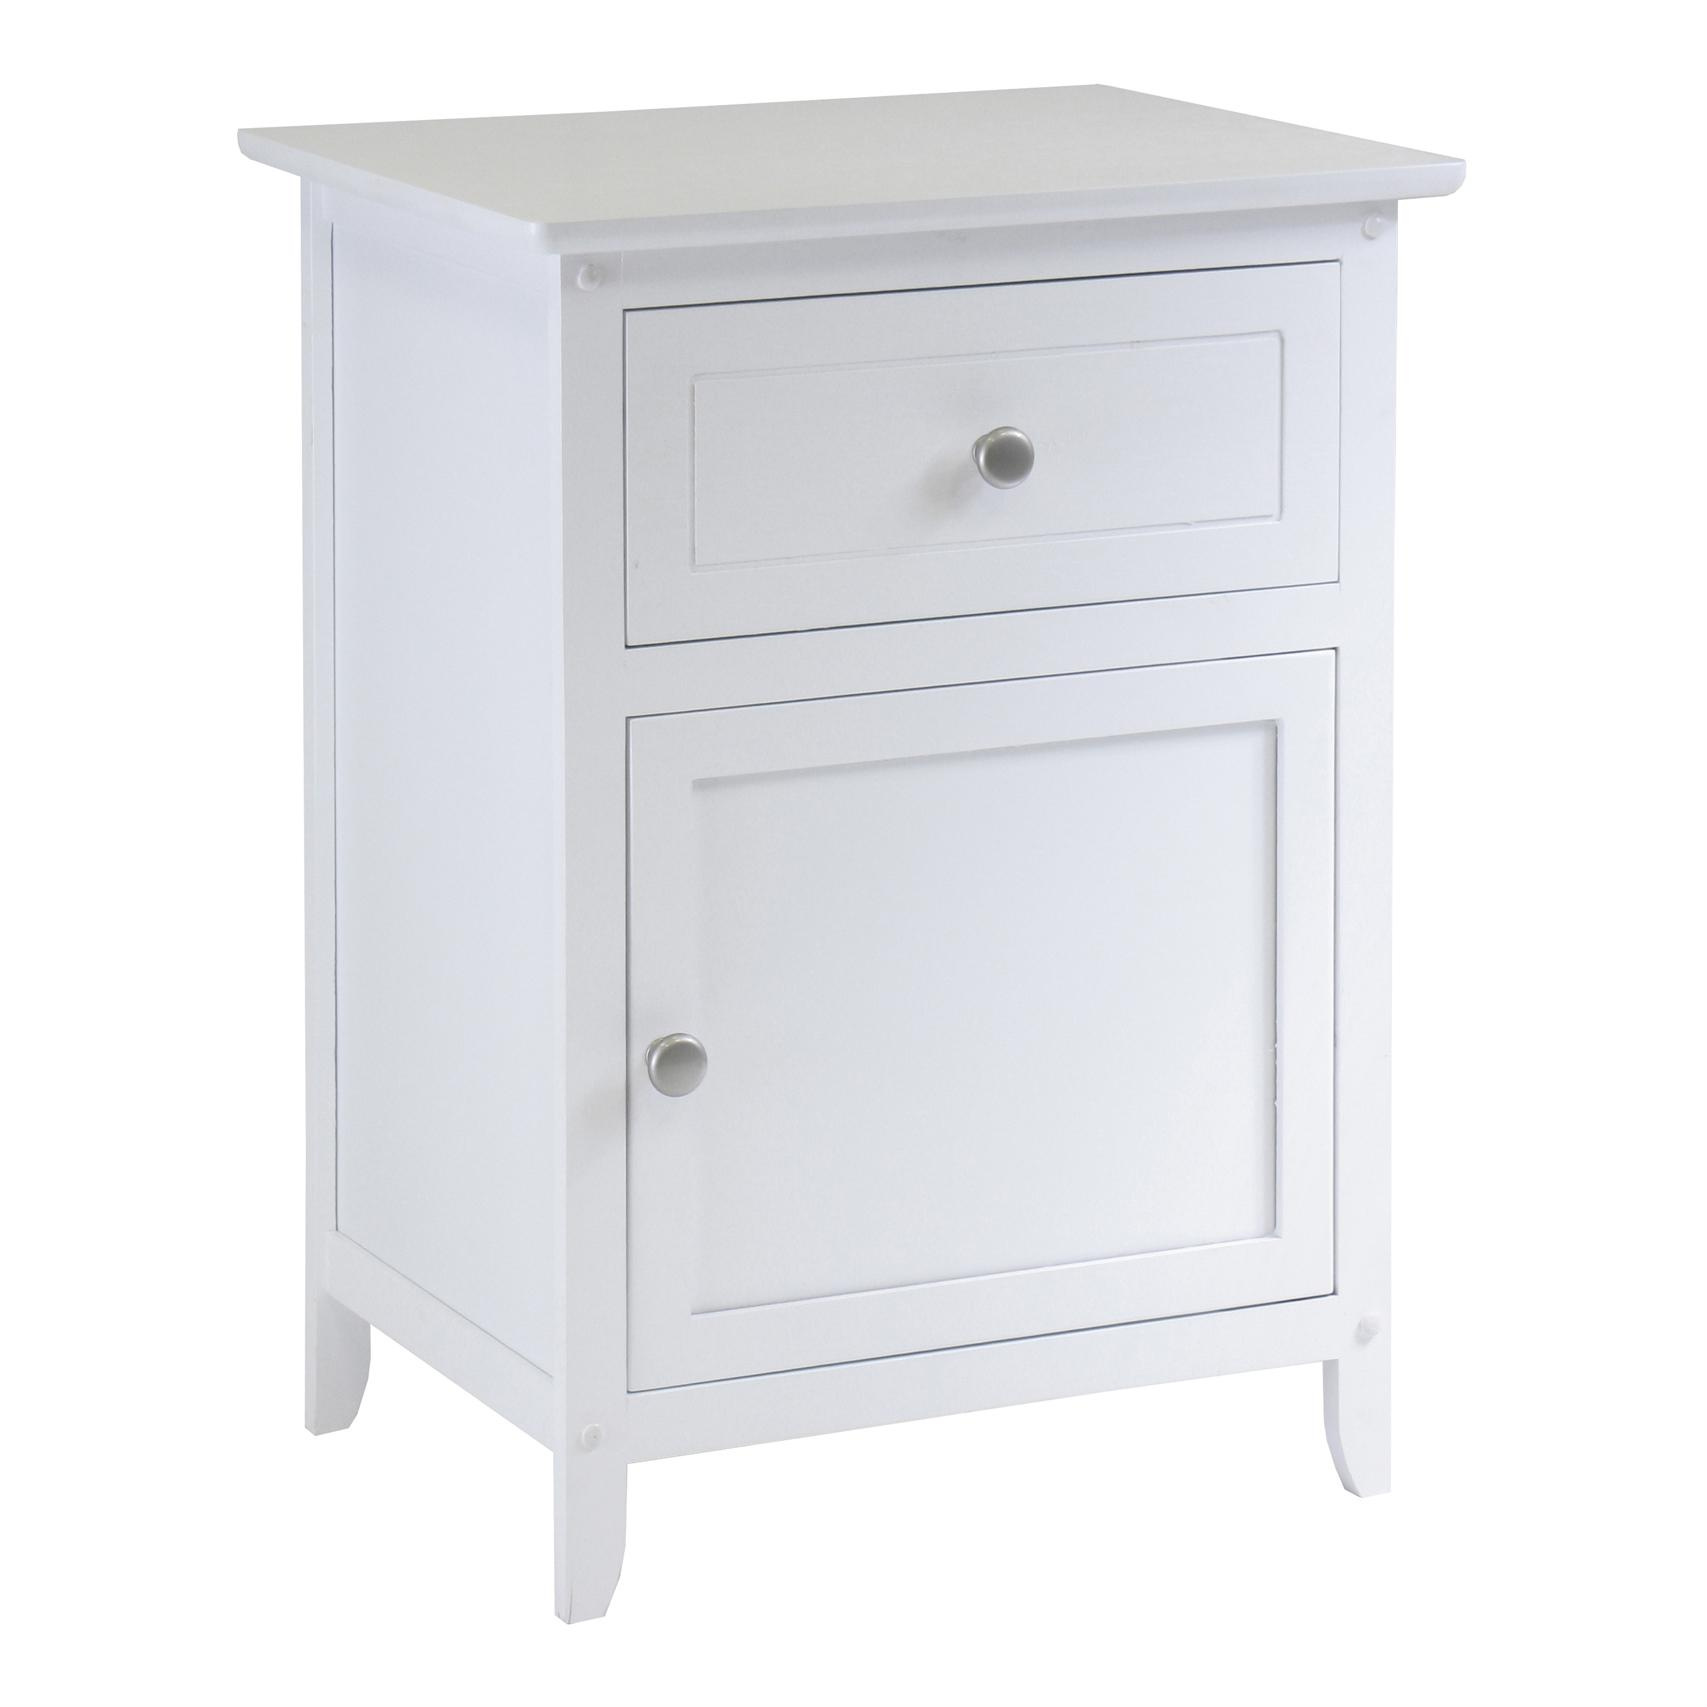 winsome wood night stand accent table with outdoor tables white drawers basket living room marble desk concrete dining and chairs black bar house home decorating hampton bay